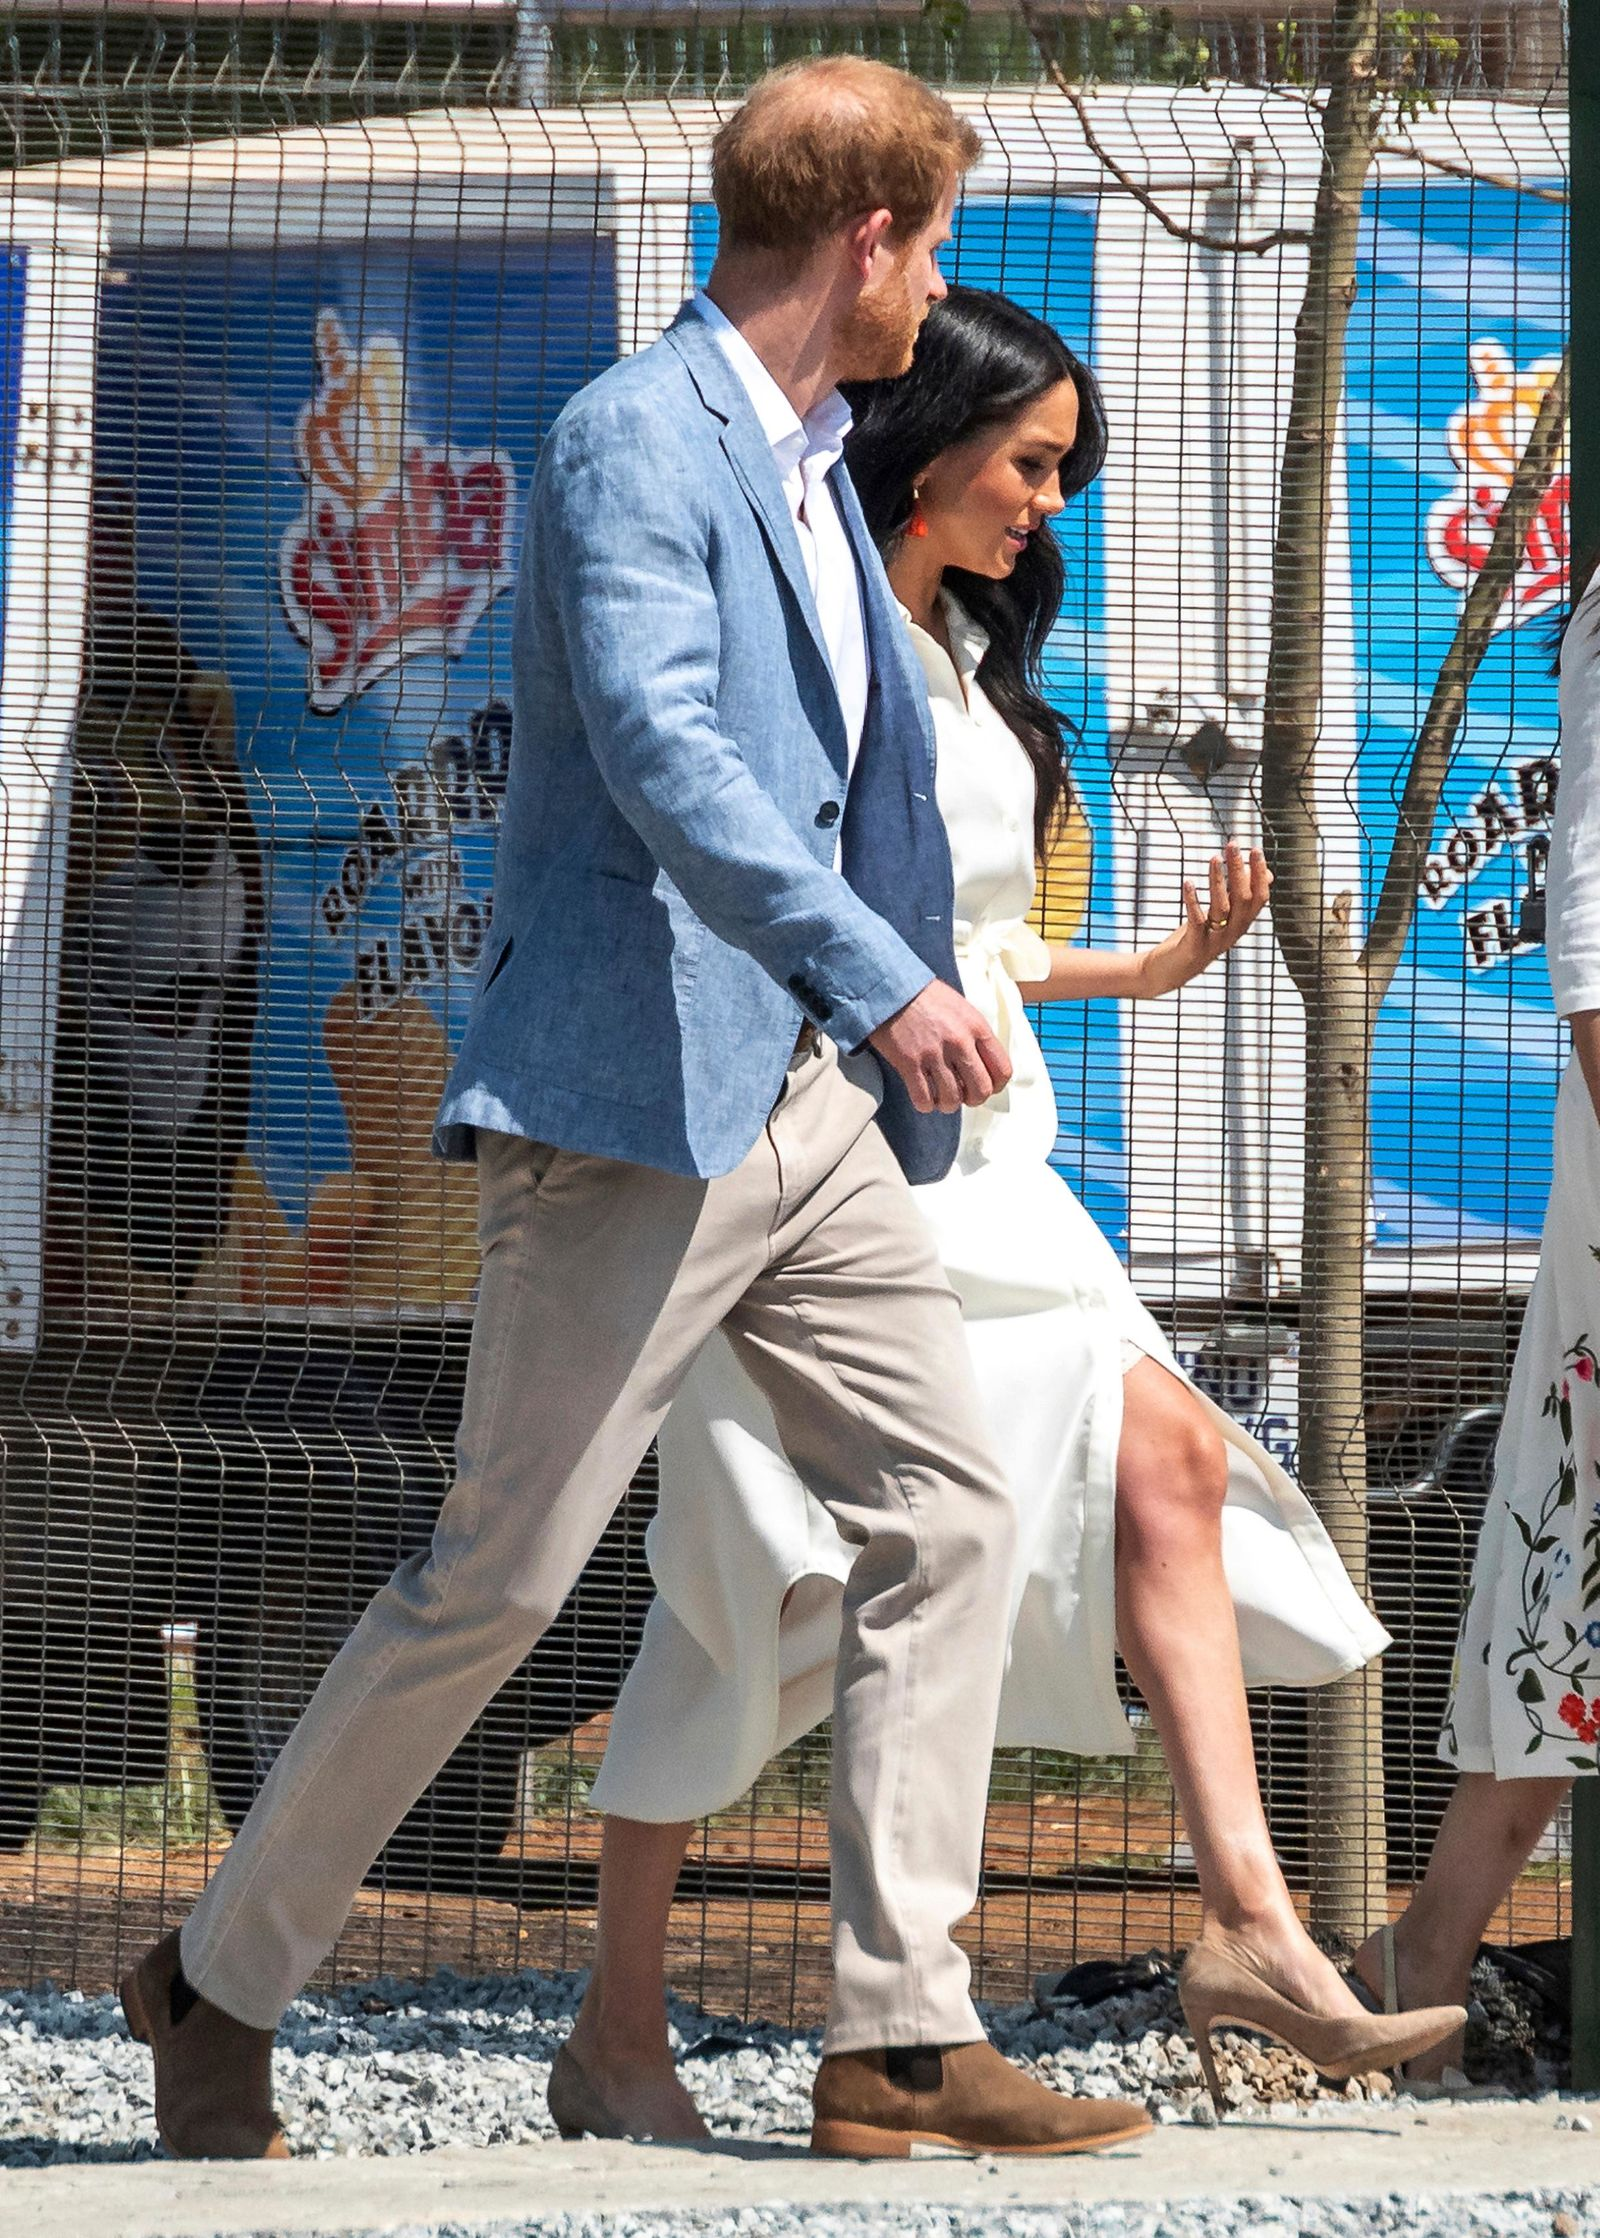 Britain's Prince Harry and Meghan, Duchess of Sussex visit a Youth Employment Services Hub in Makhulong, Tembisa, a township near Johannesburg, South Africa, Wednesday Oct. 2, 2019. (AP Photo/Christiaan Kotze)